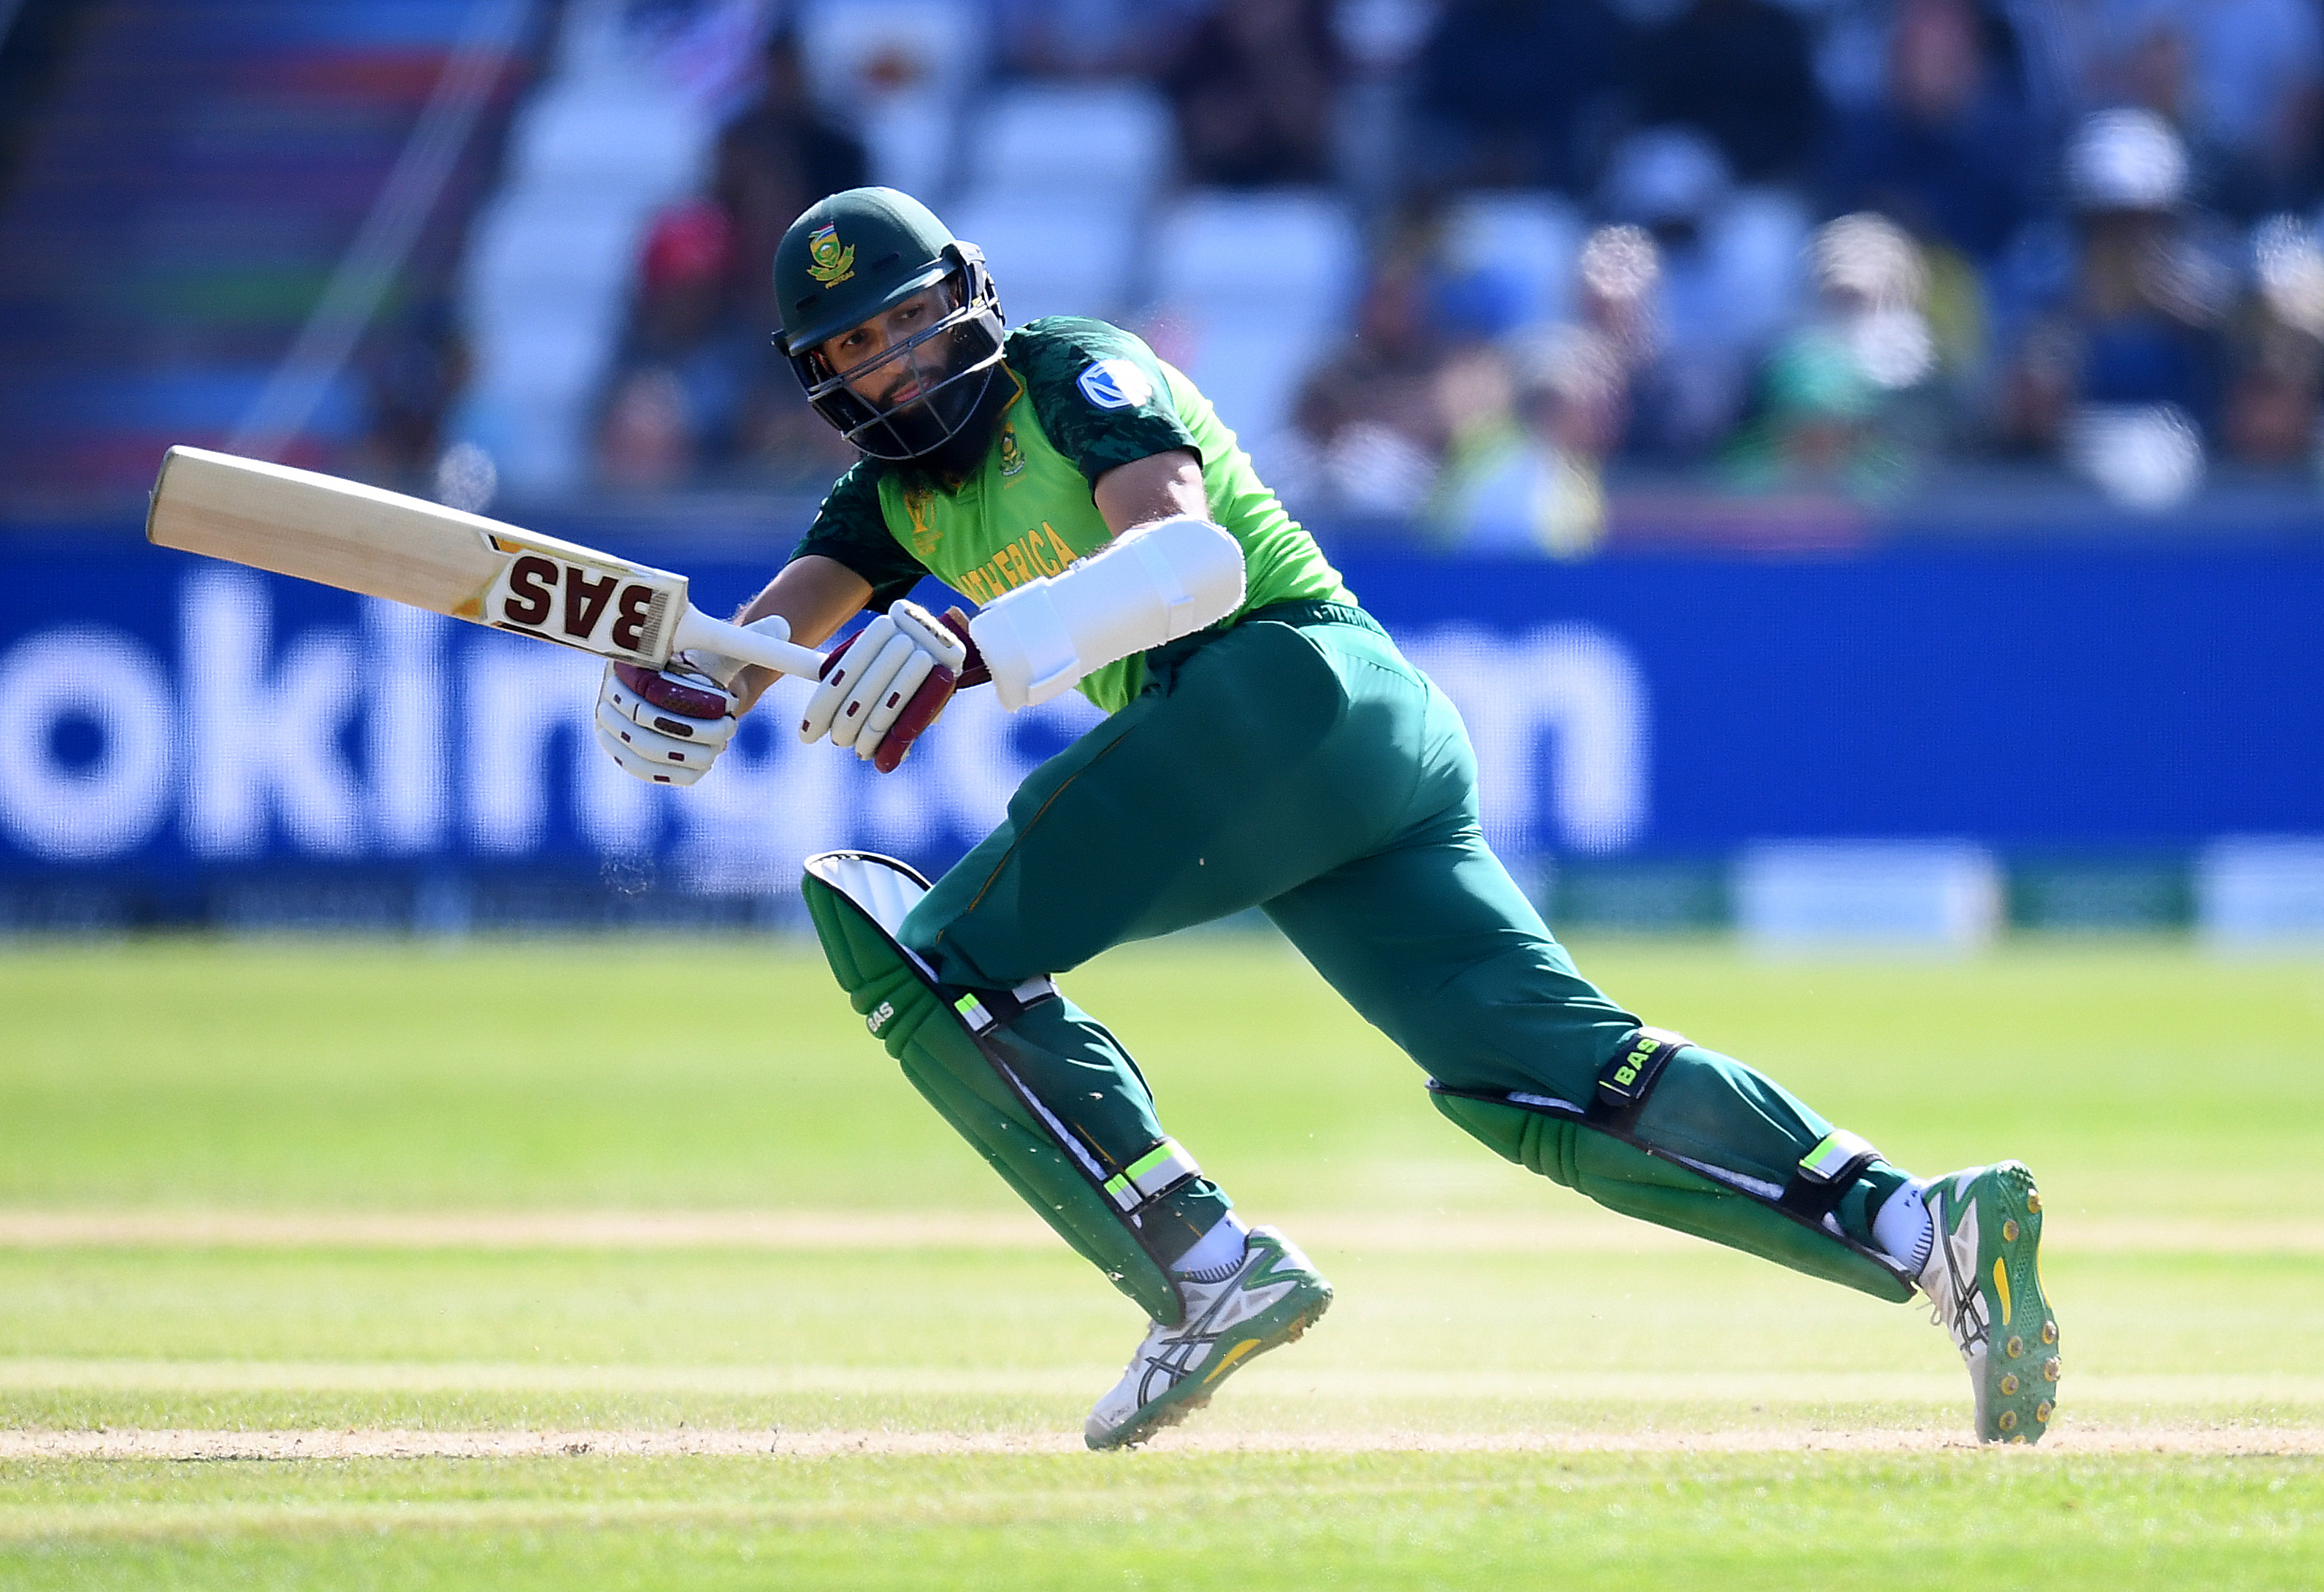 Proteas batsman Hashim Amla has announced his retirement from international cricket.